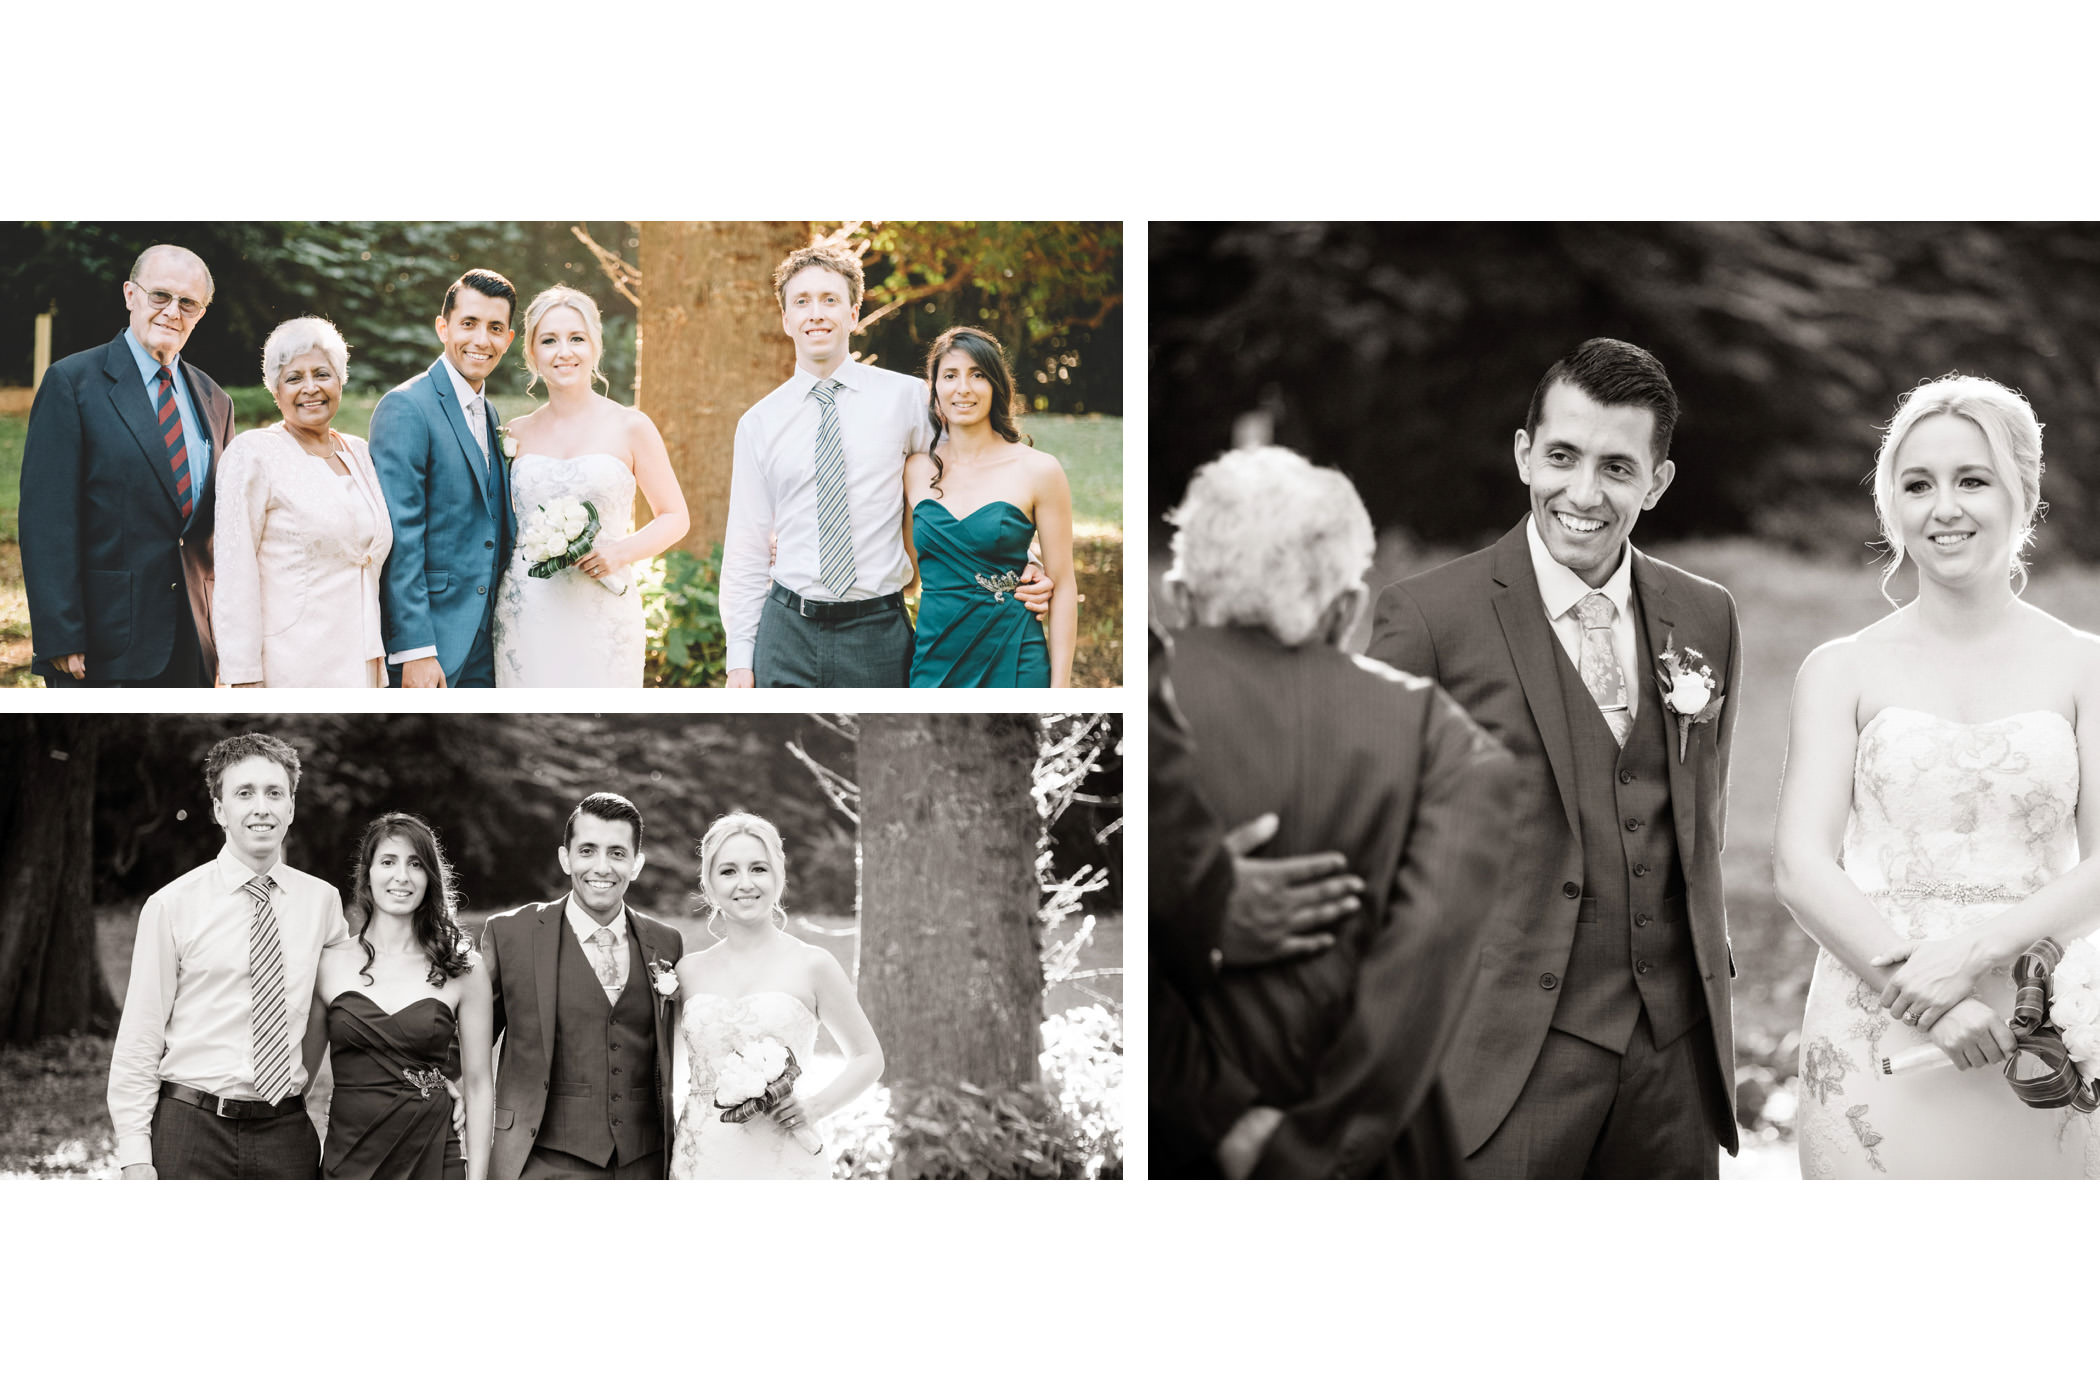 Bluff Wedding Photography Bride and Groom Family